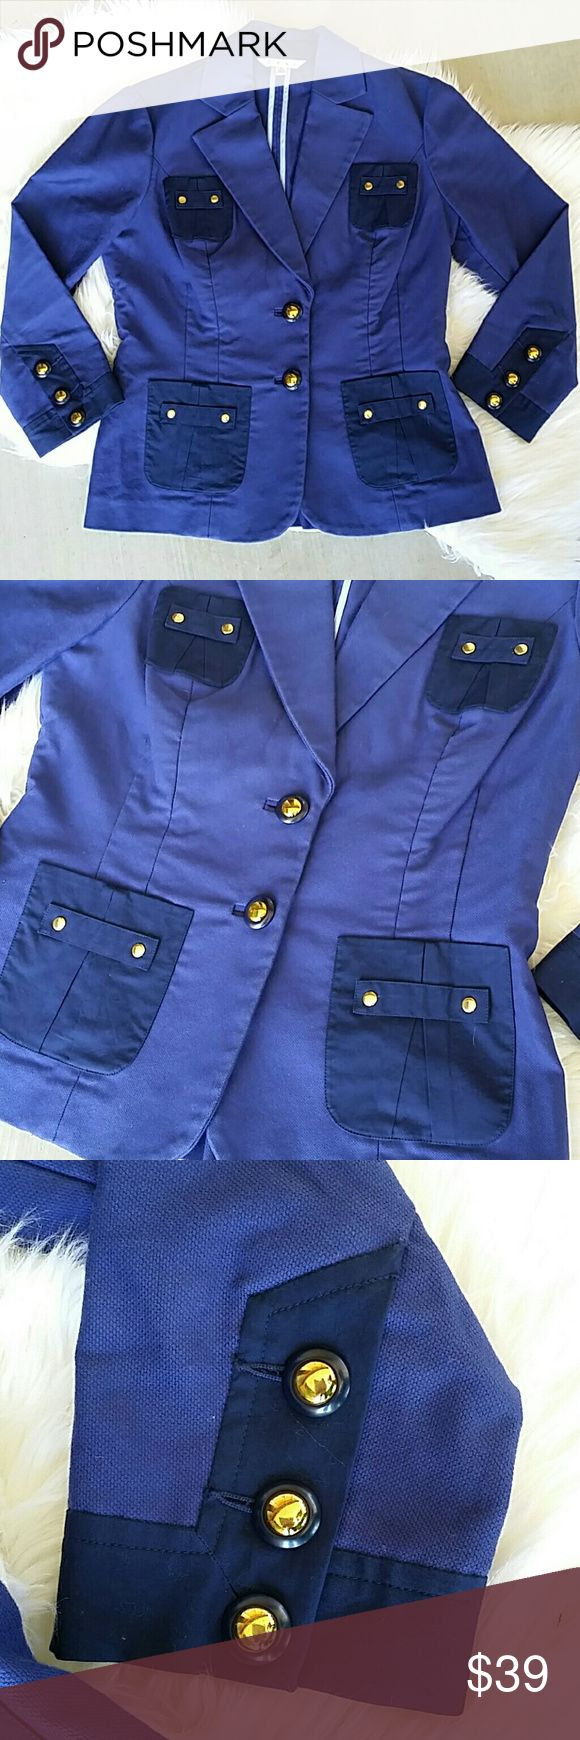 CAbi Blue Blazer Size 4 Bright navy blue with contrast light blue stitching inside. Gold tone button and 4 outer pockets.  Euc very gently worn  No trades I only sell on poshmark I Love offers CAbi Jackets & Coats Blazers